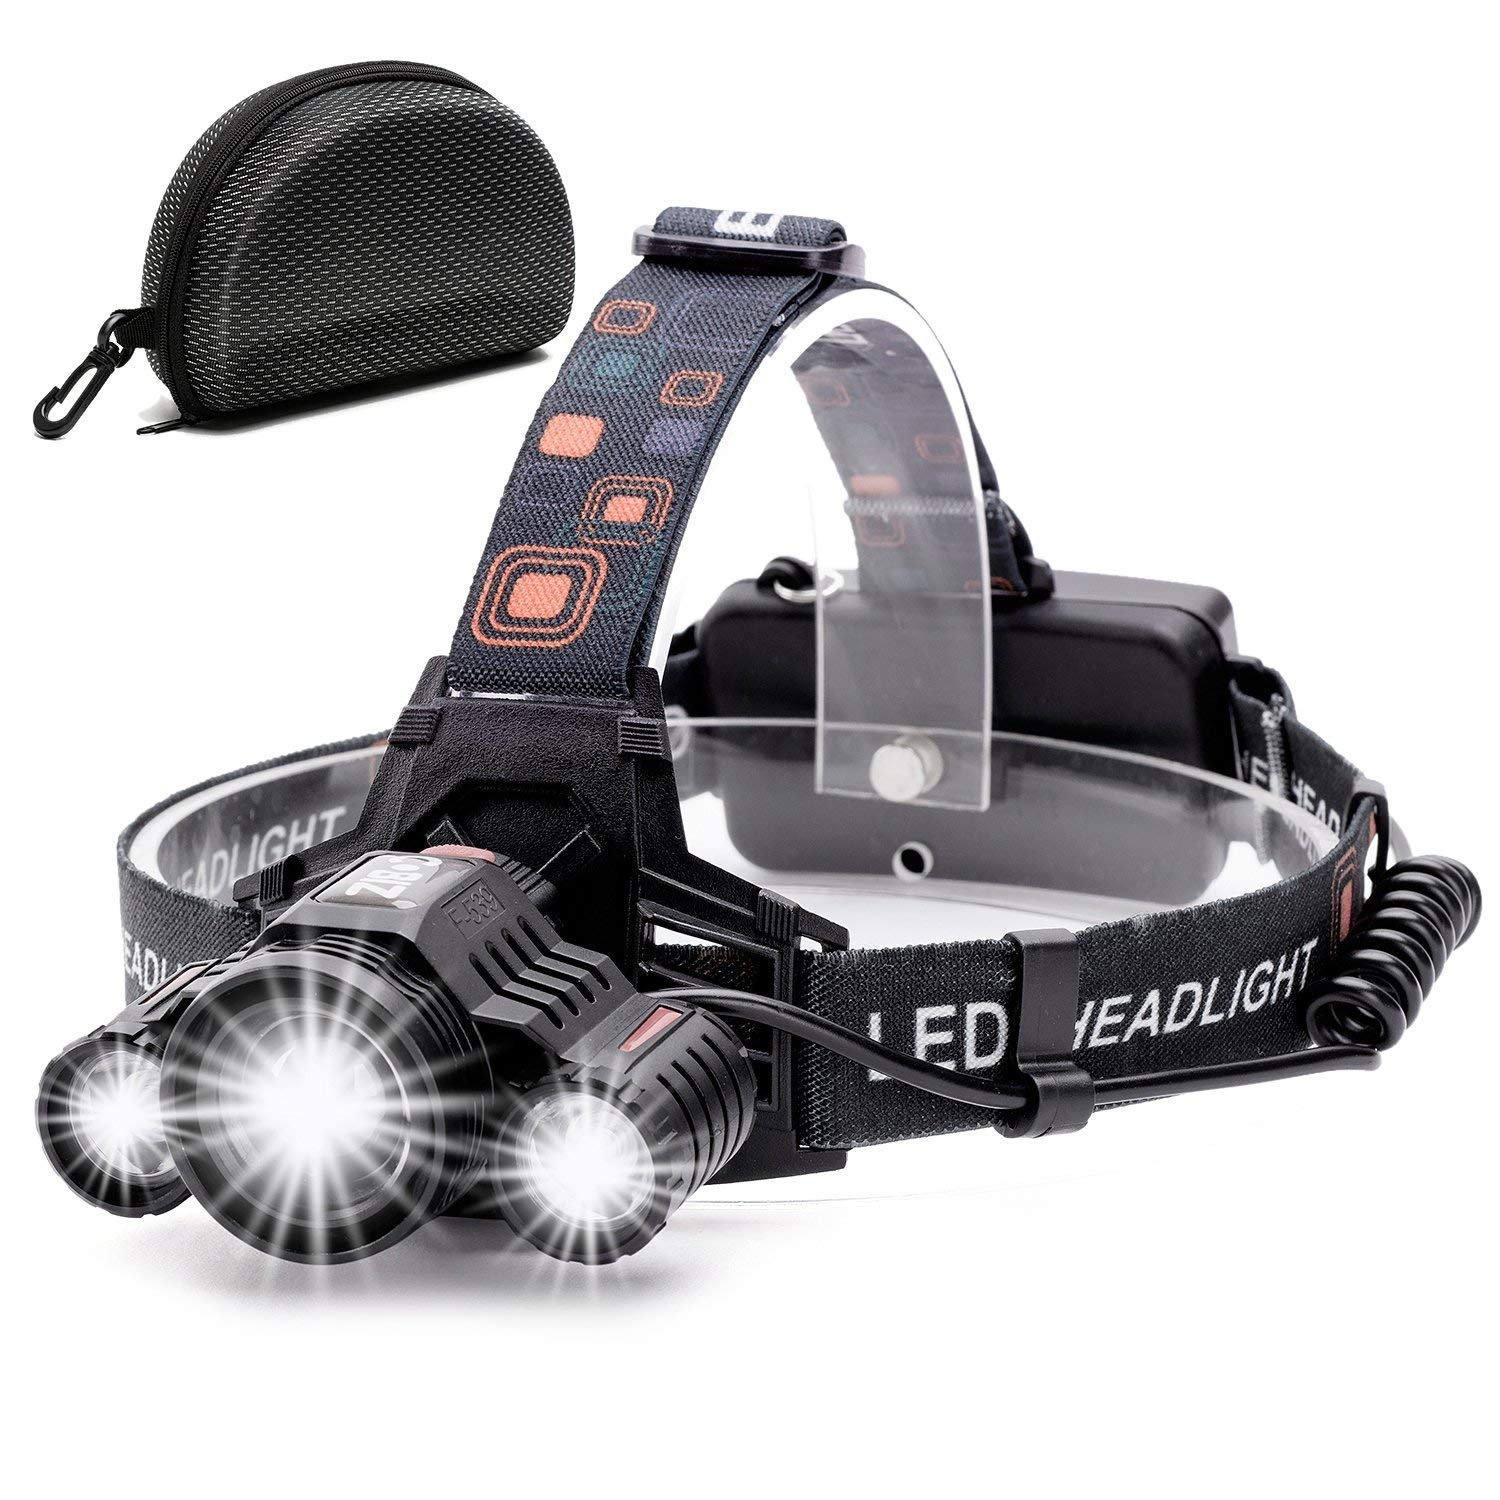 Headlamp,Cobiz Brightest High 6000 Lumen LED Work Headlight,18650 USB Rechargeable Waterproof Flashlight with Zoomable Work Light,Head Lights for Camping,Hiking, Outdoors by Cobiz